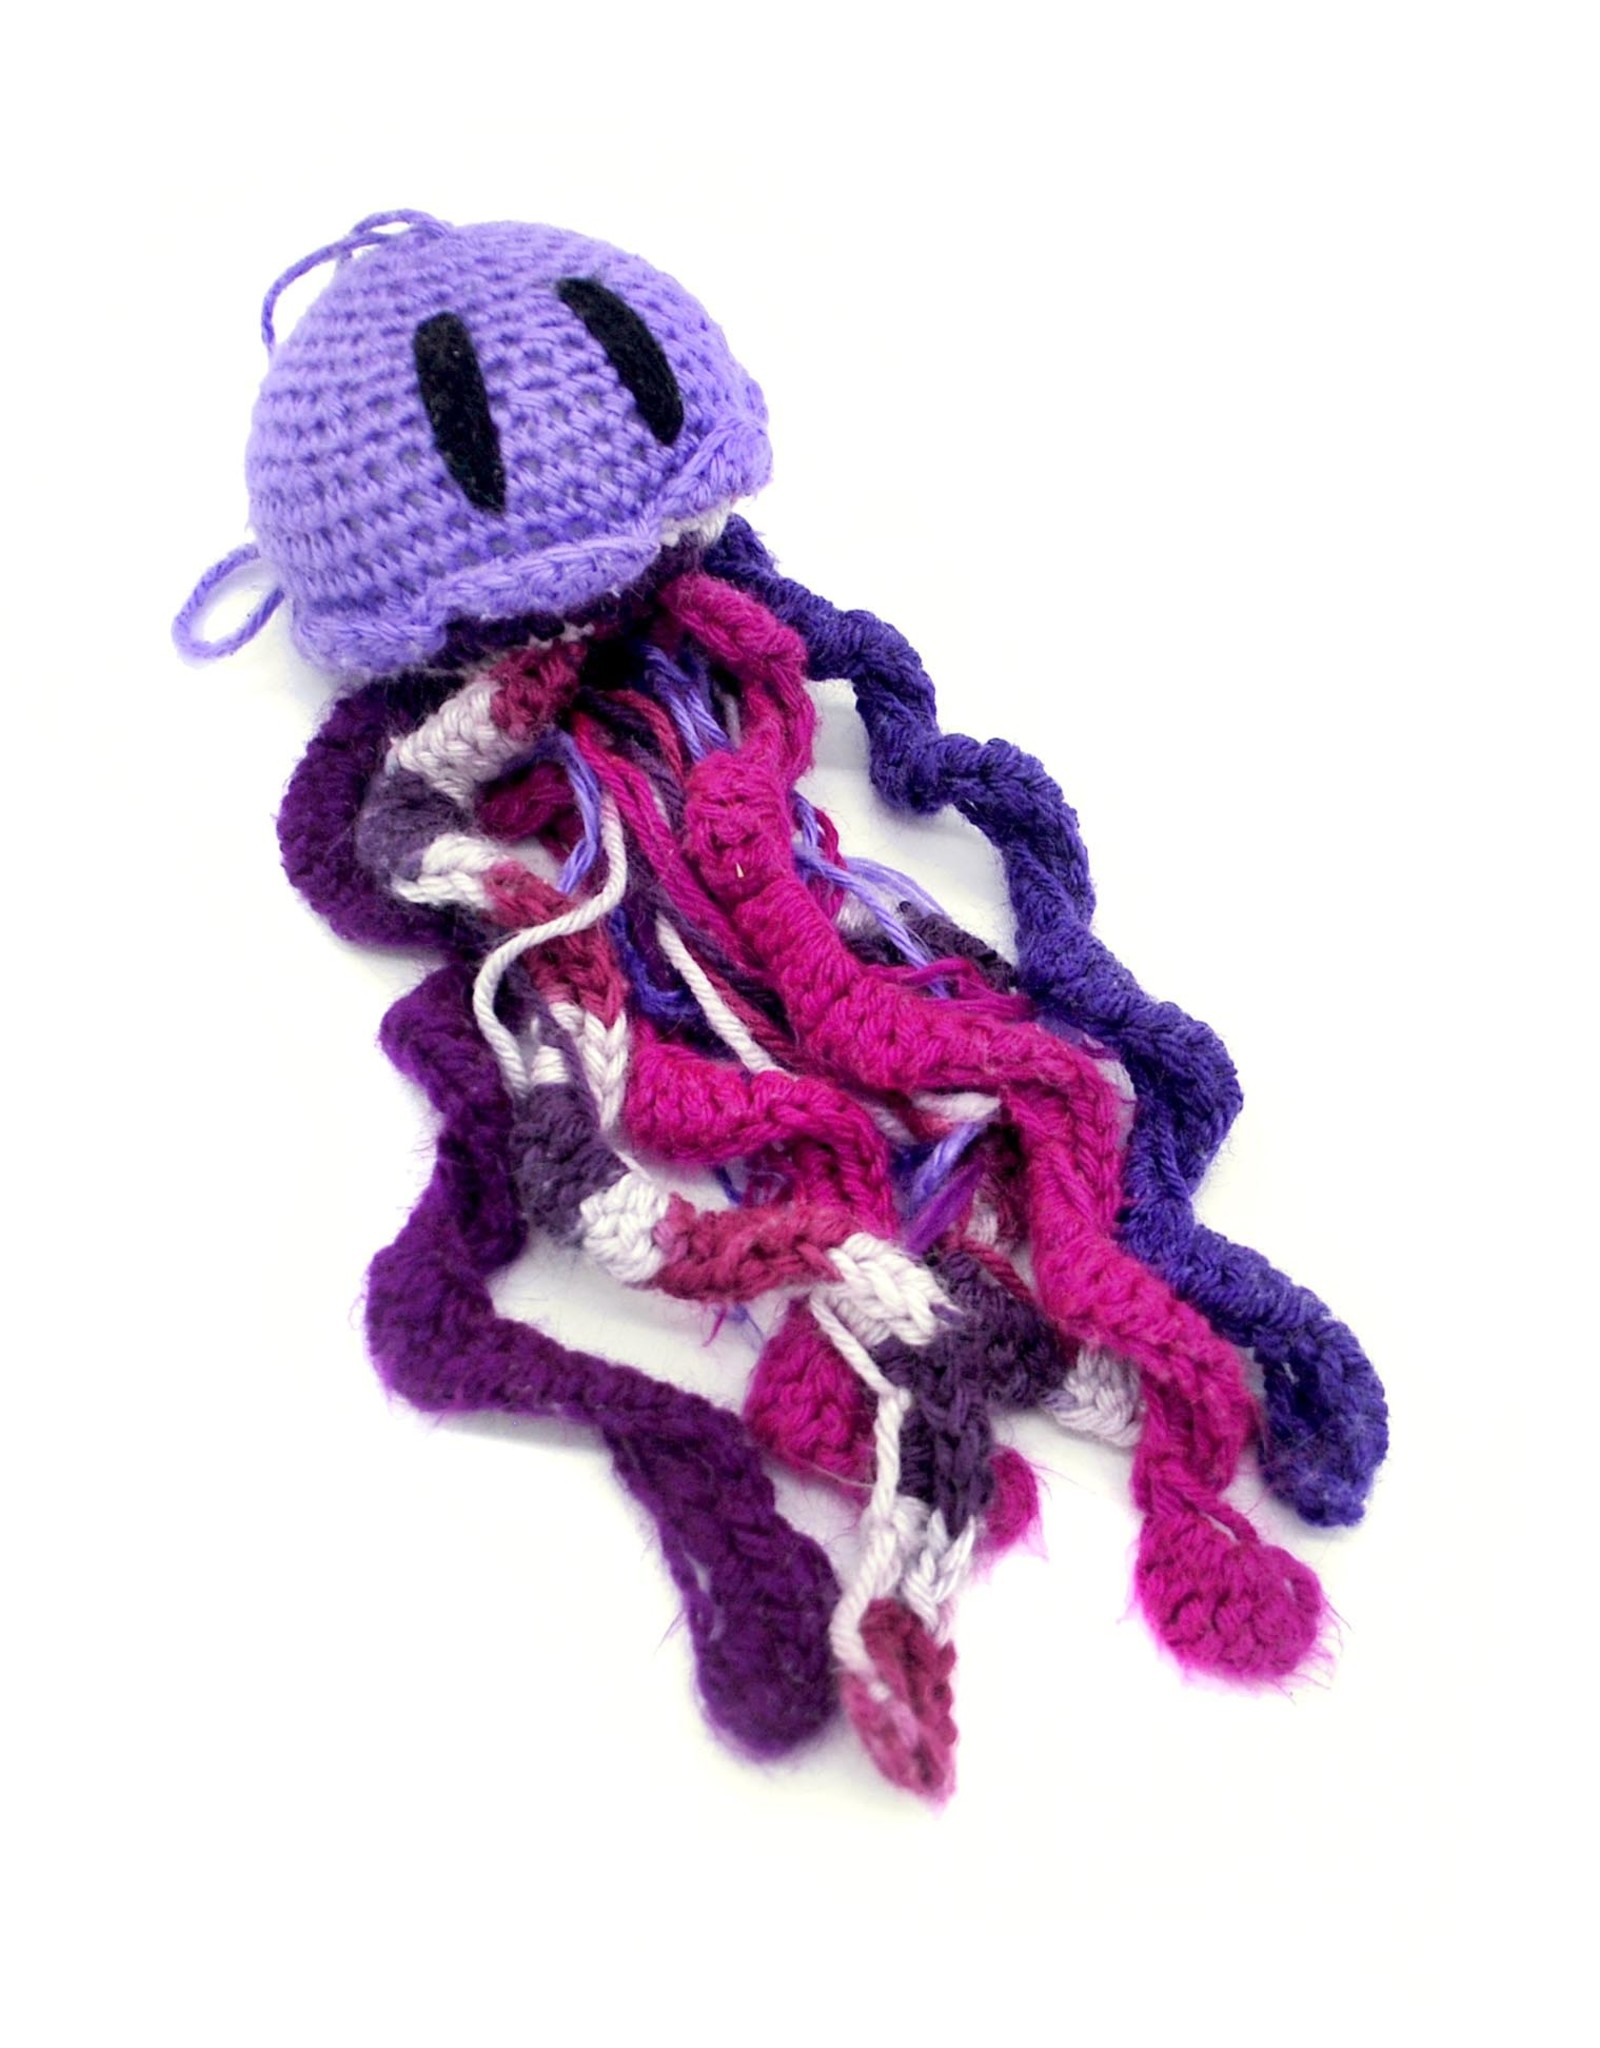 Haley Slamon Lavender and Purple Plush Jellyfish by Haley Slamon